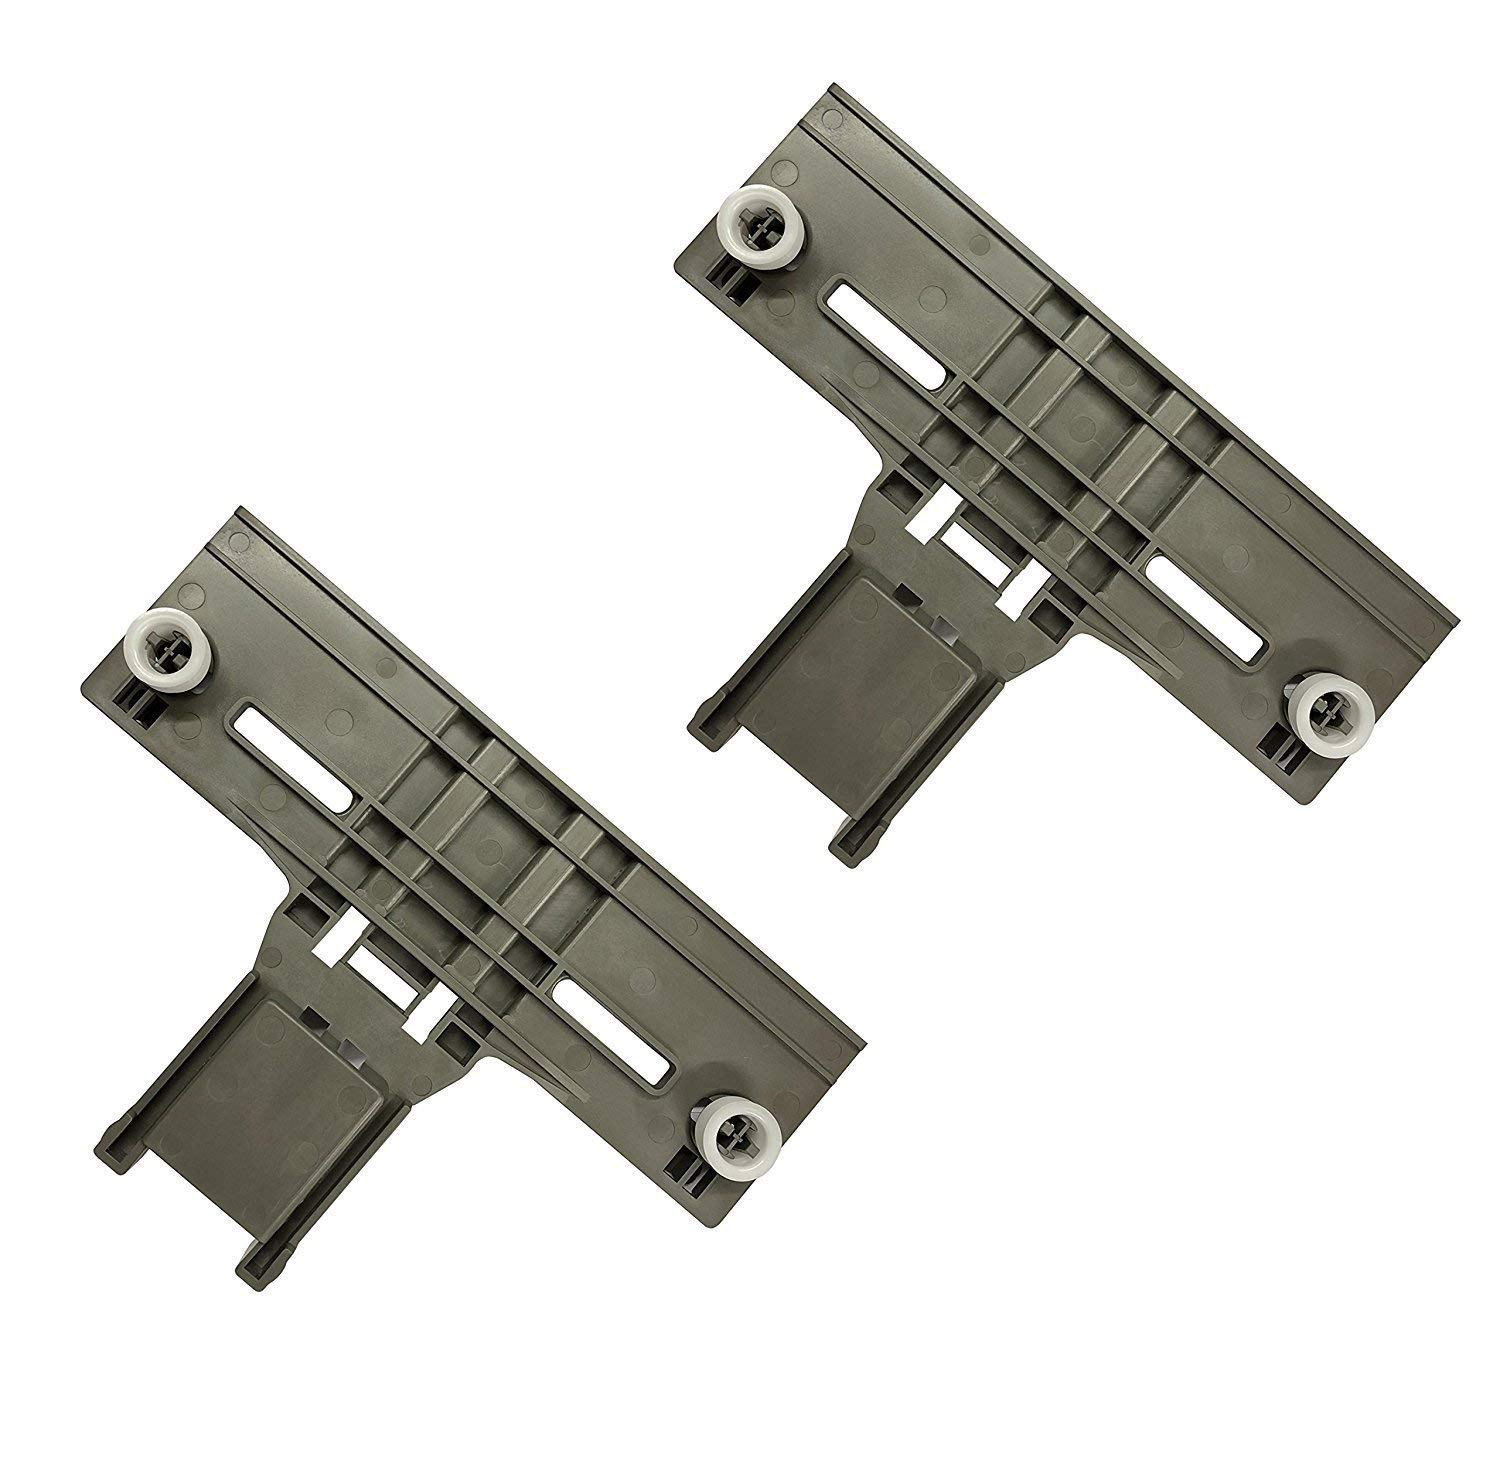 [ Upgraded ] Ultra Durable W10350376 Dishwasher Top Rack Adjuster Replacement part by SANJOIN – Exact Fit For Whirlpool & Kenmore Dishwashers - Enhanced Durability with Steel Screws - PACK OF 2